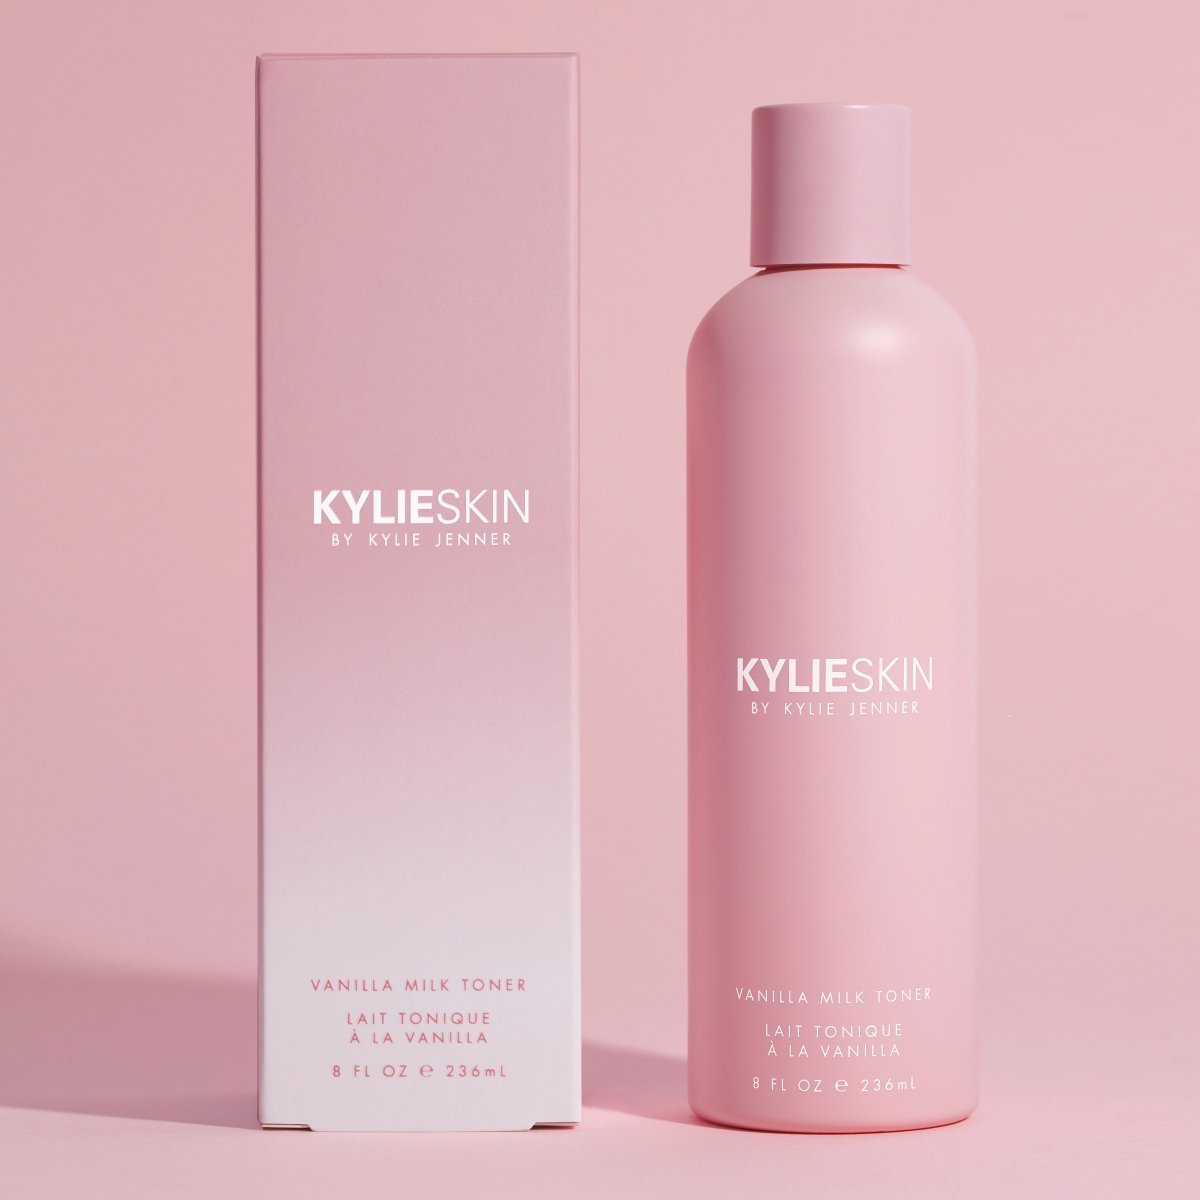 Kylie Skin Vanilla Milk Toner package and product